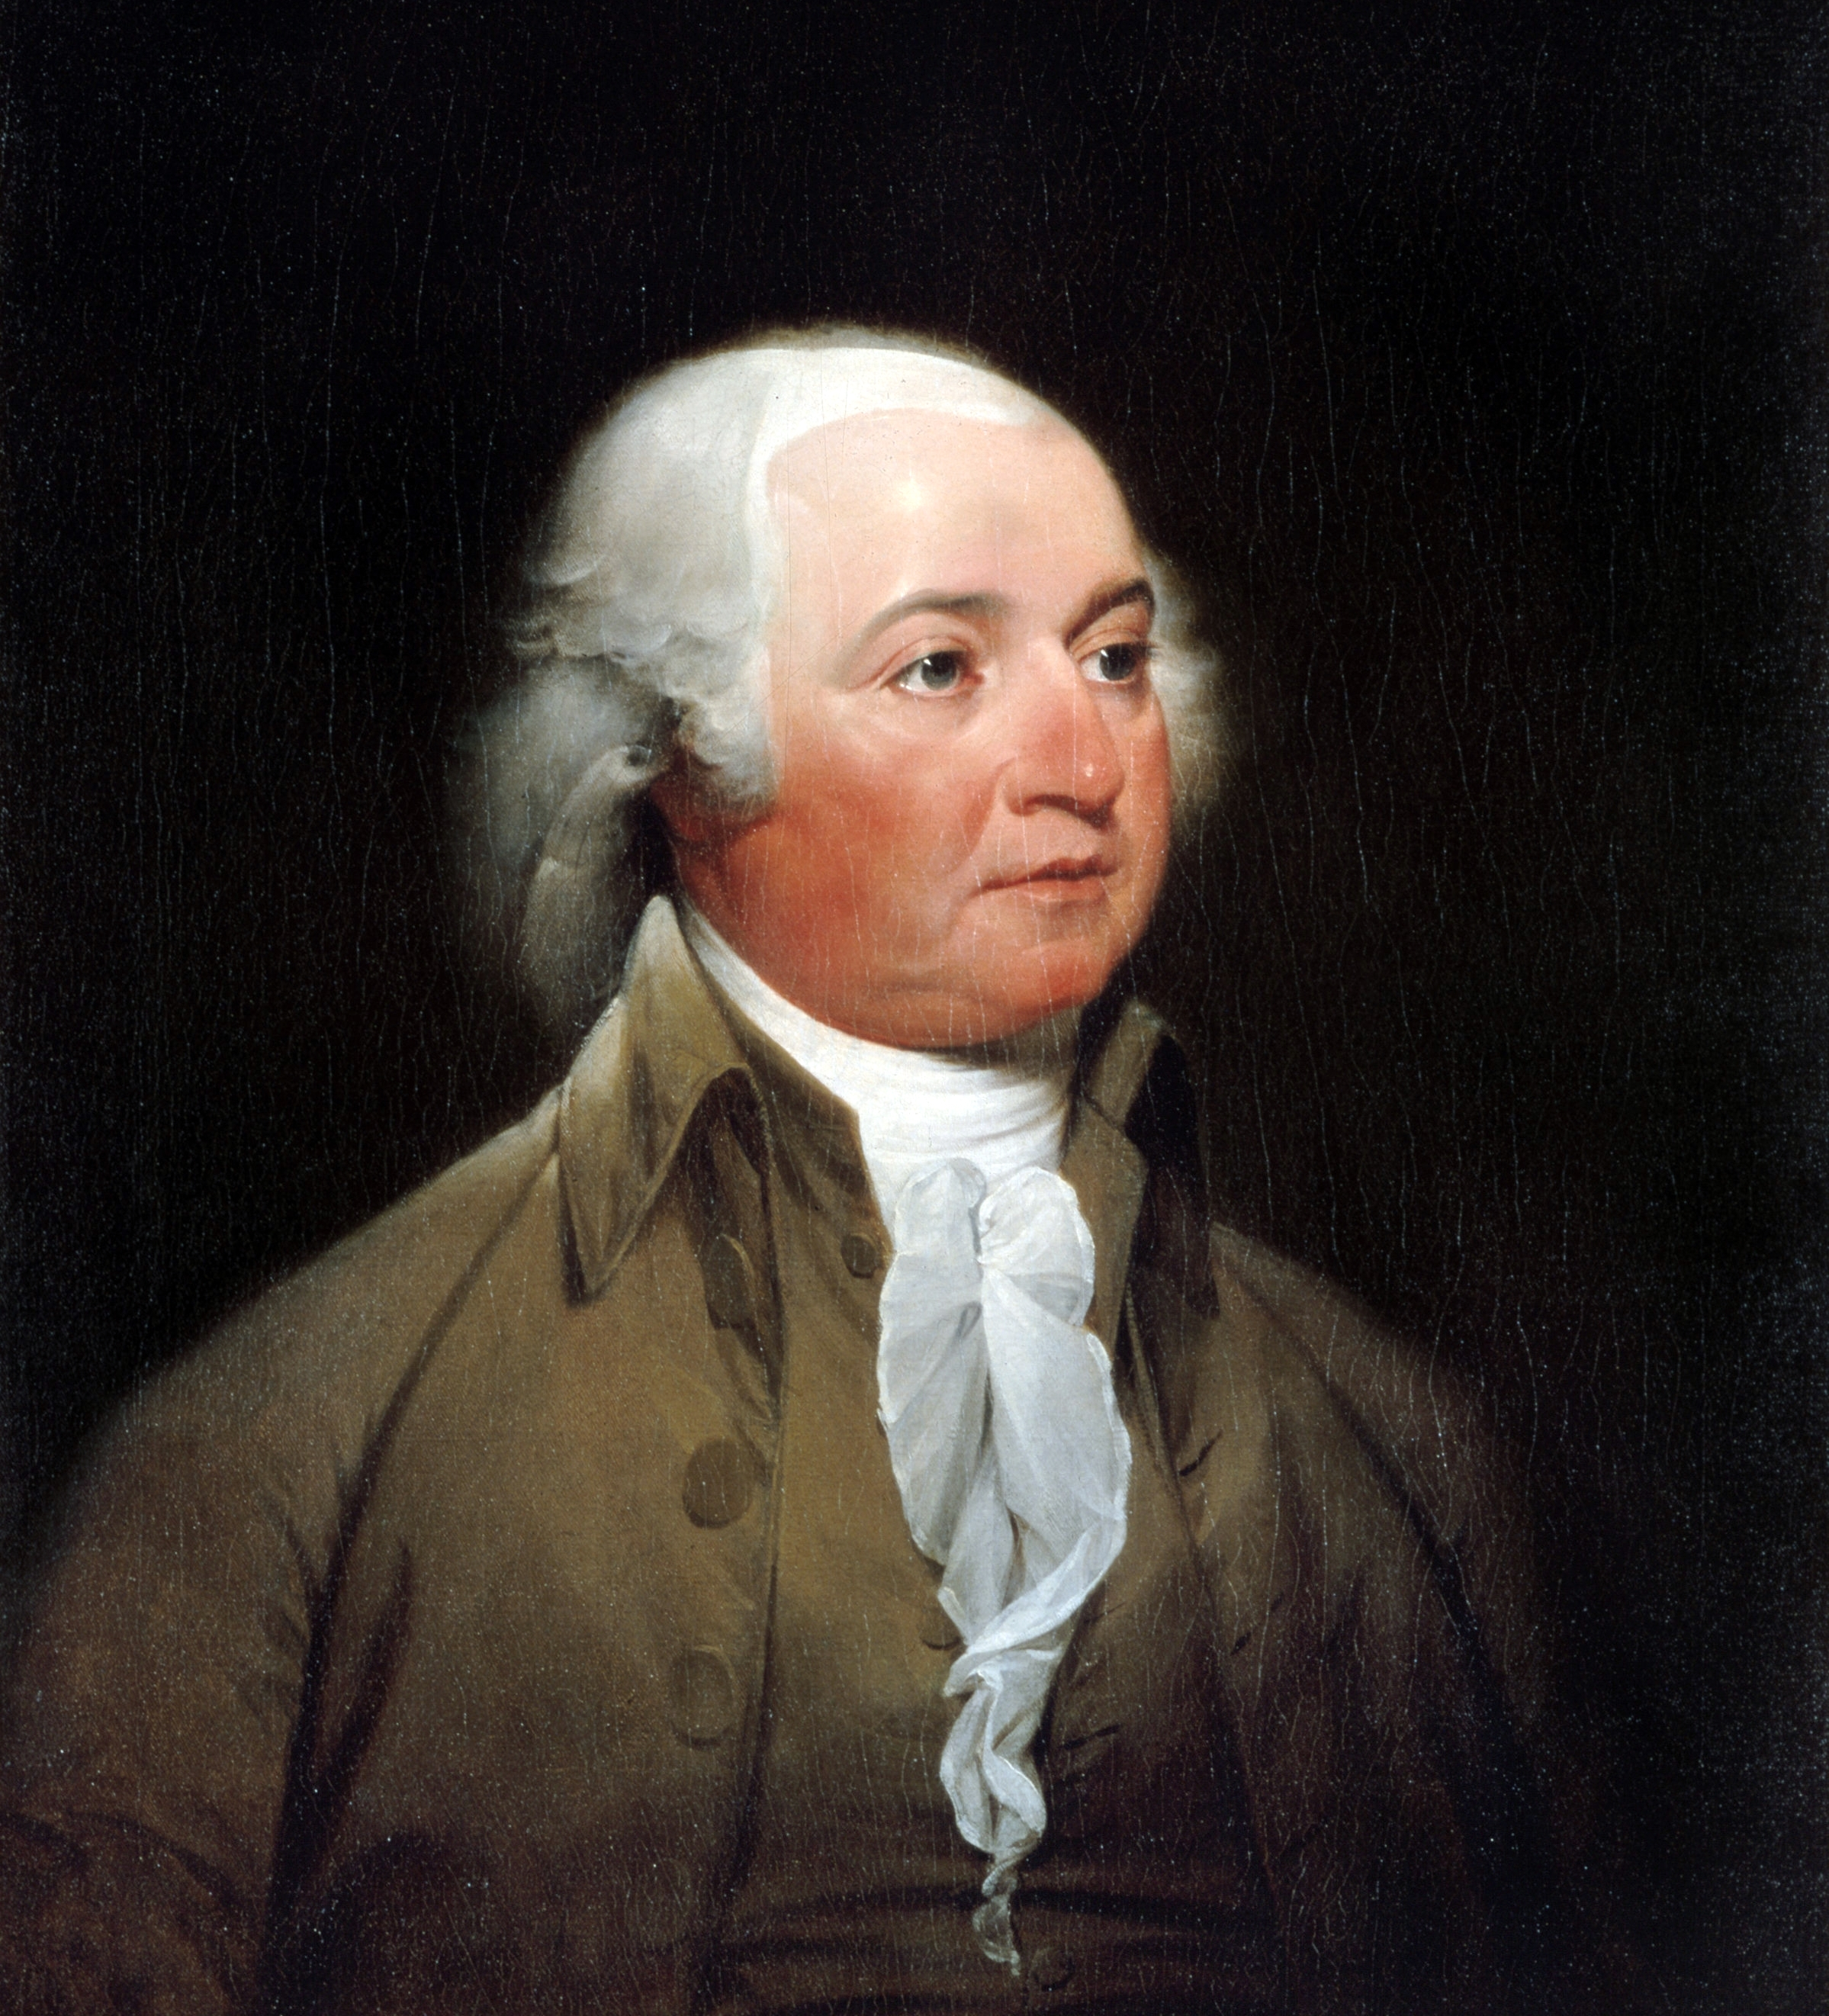 John Adams, portrait by John Trumbull.